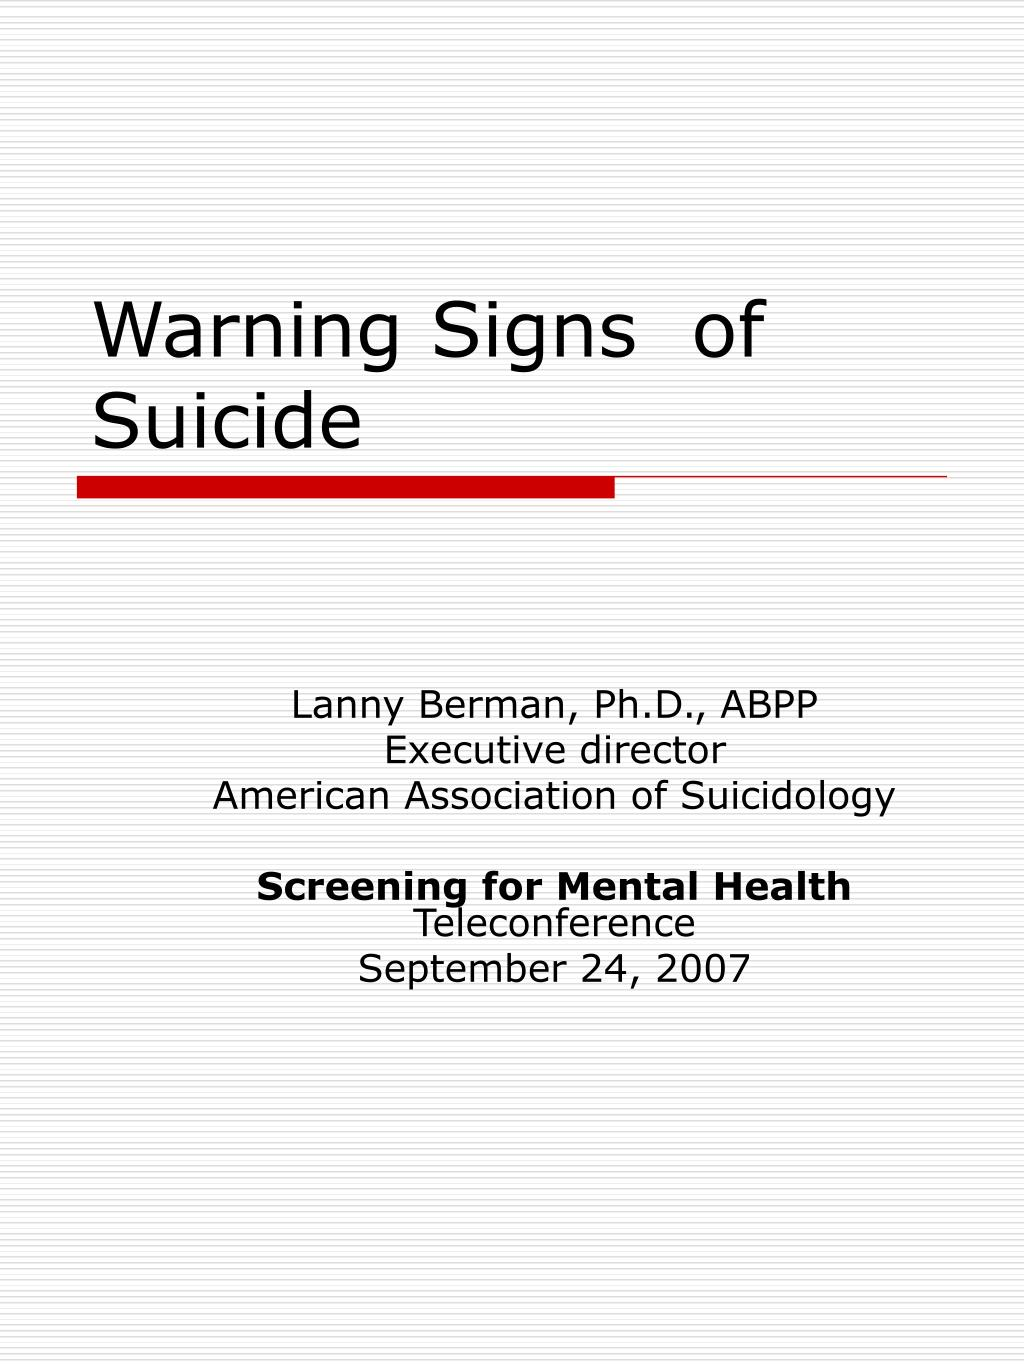 Ppt Warning Signs Of Suicide Powerpoint Presentation Id 7098488